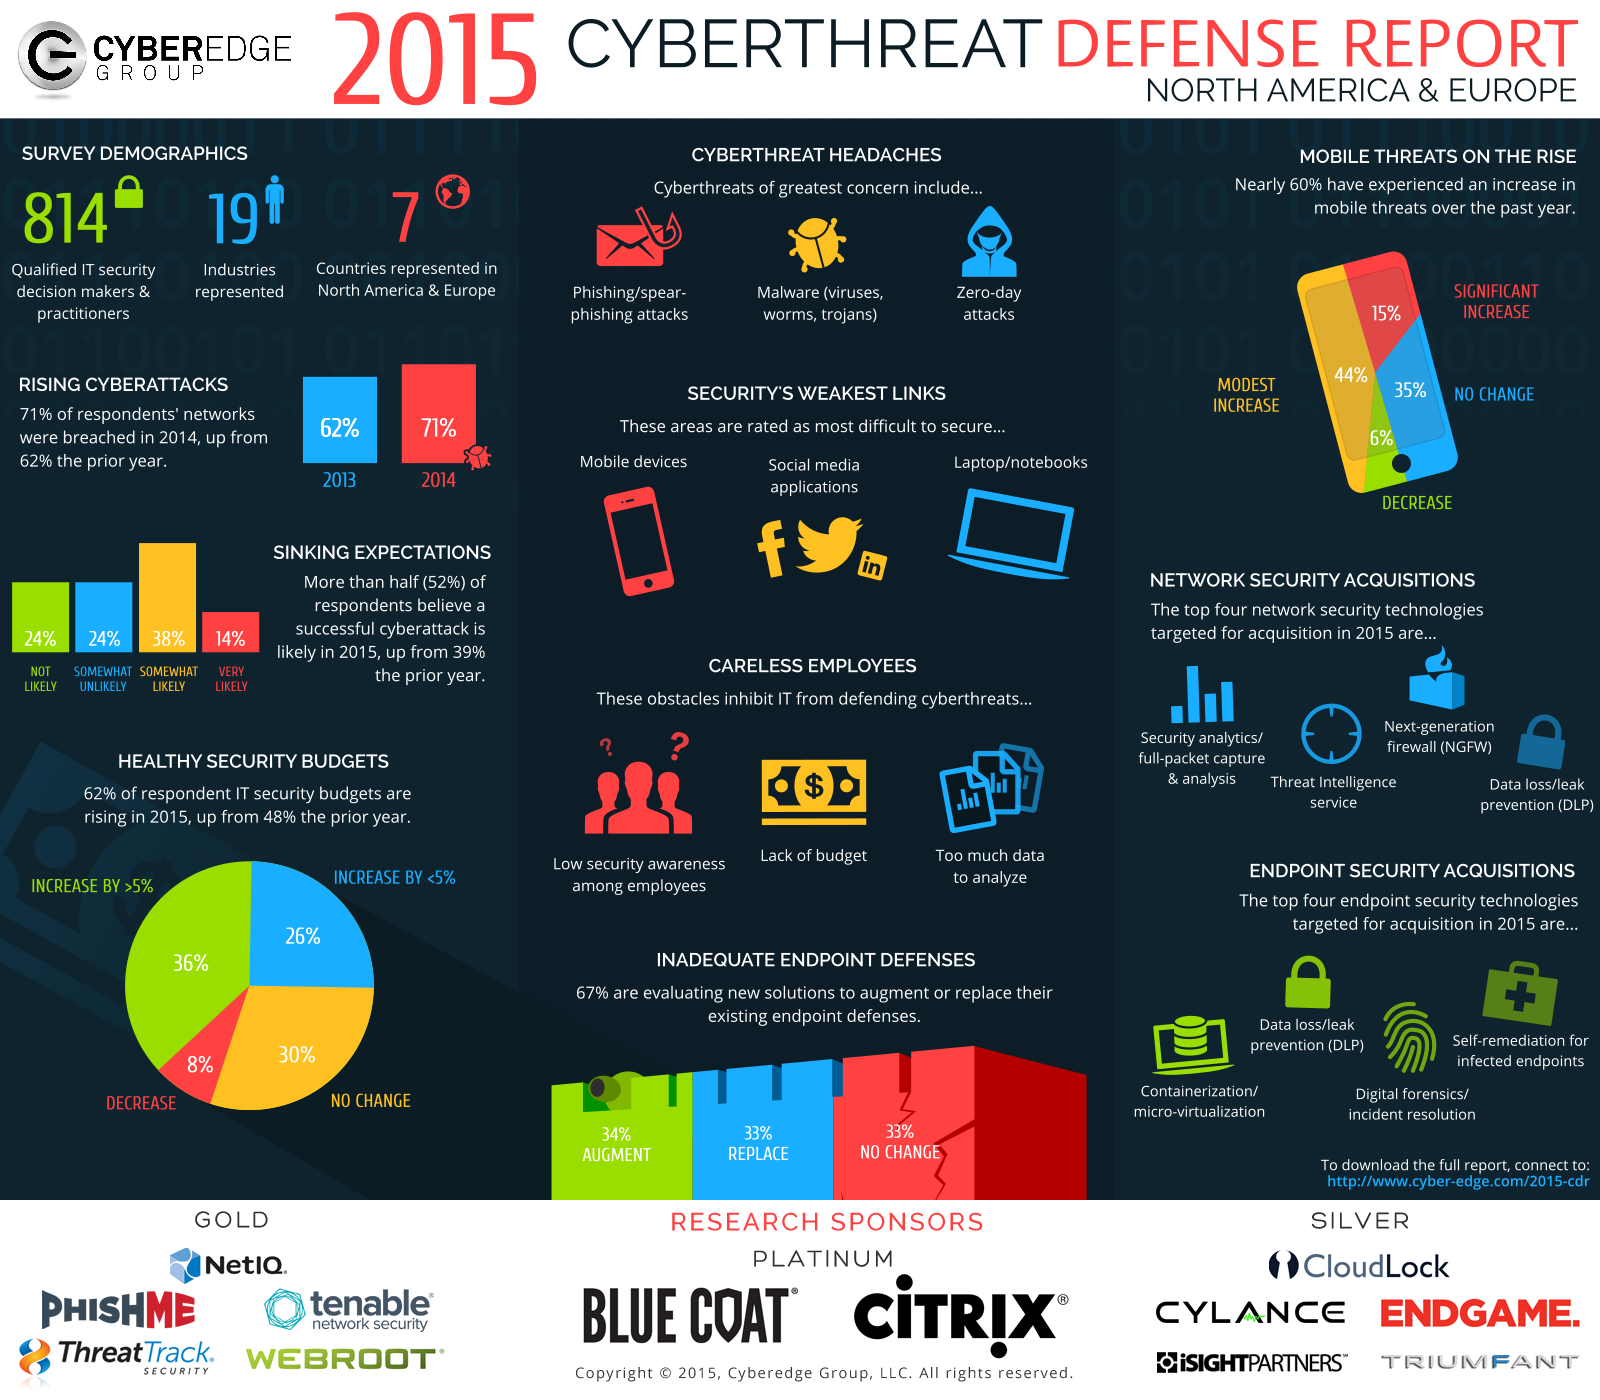 Presentation image for CyberEdge 2015 Cyberthreat Defense Report Infographic